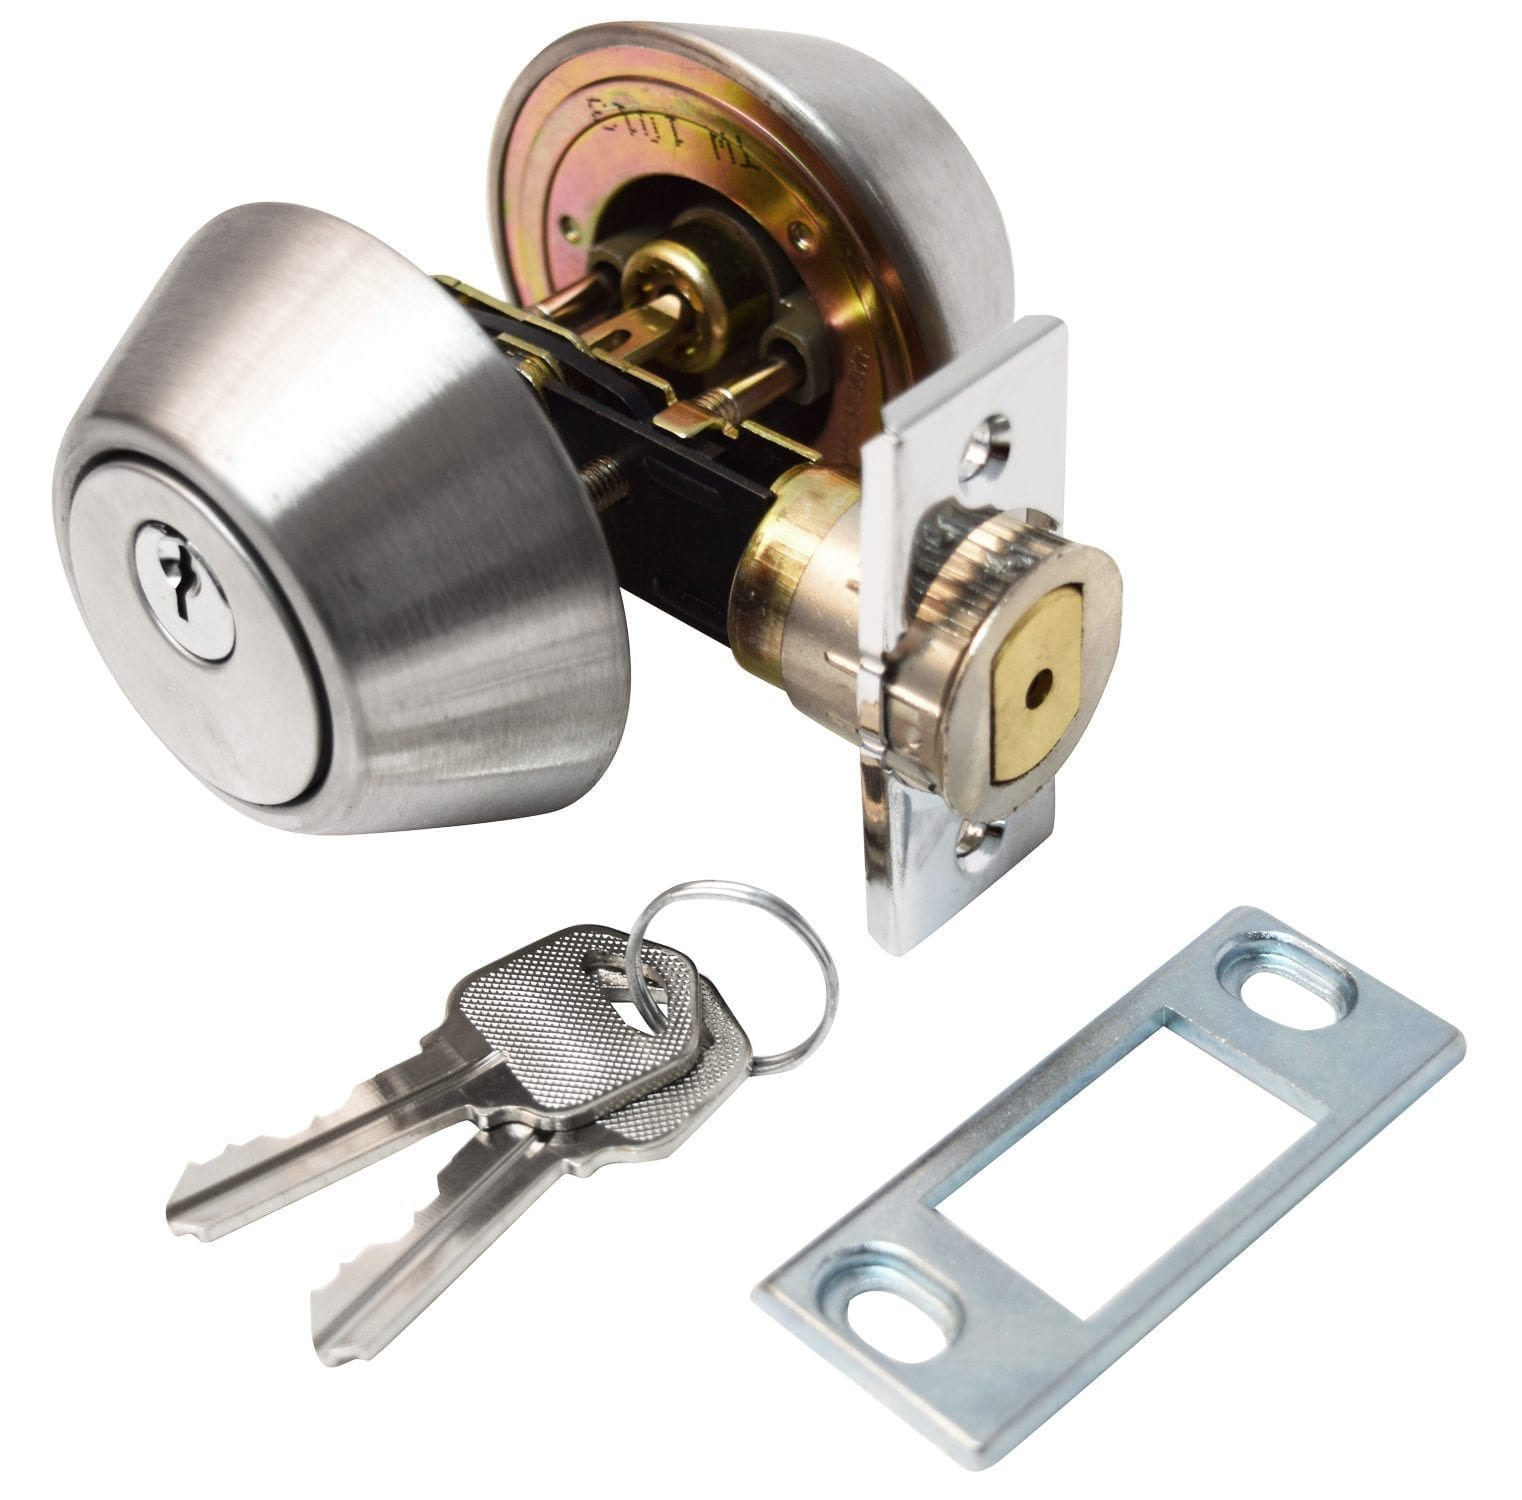 Rvs Cilinder Deadbolt Double Cylinder 5 8 Quot Throw Stainless Steel